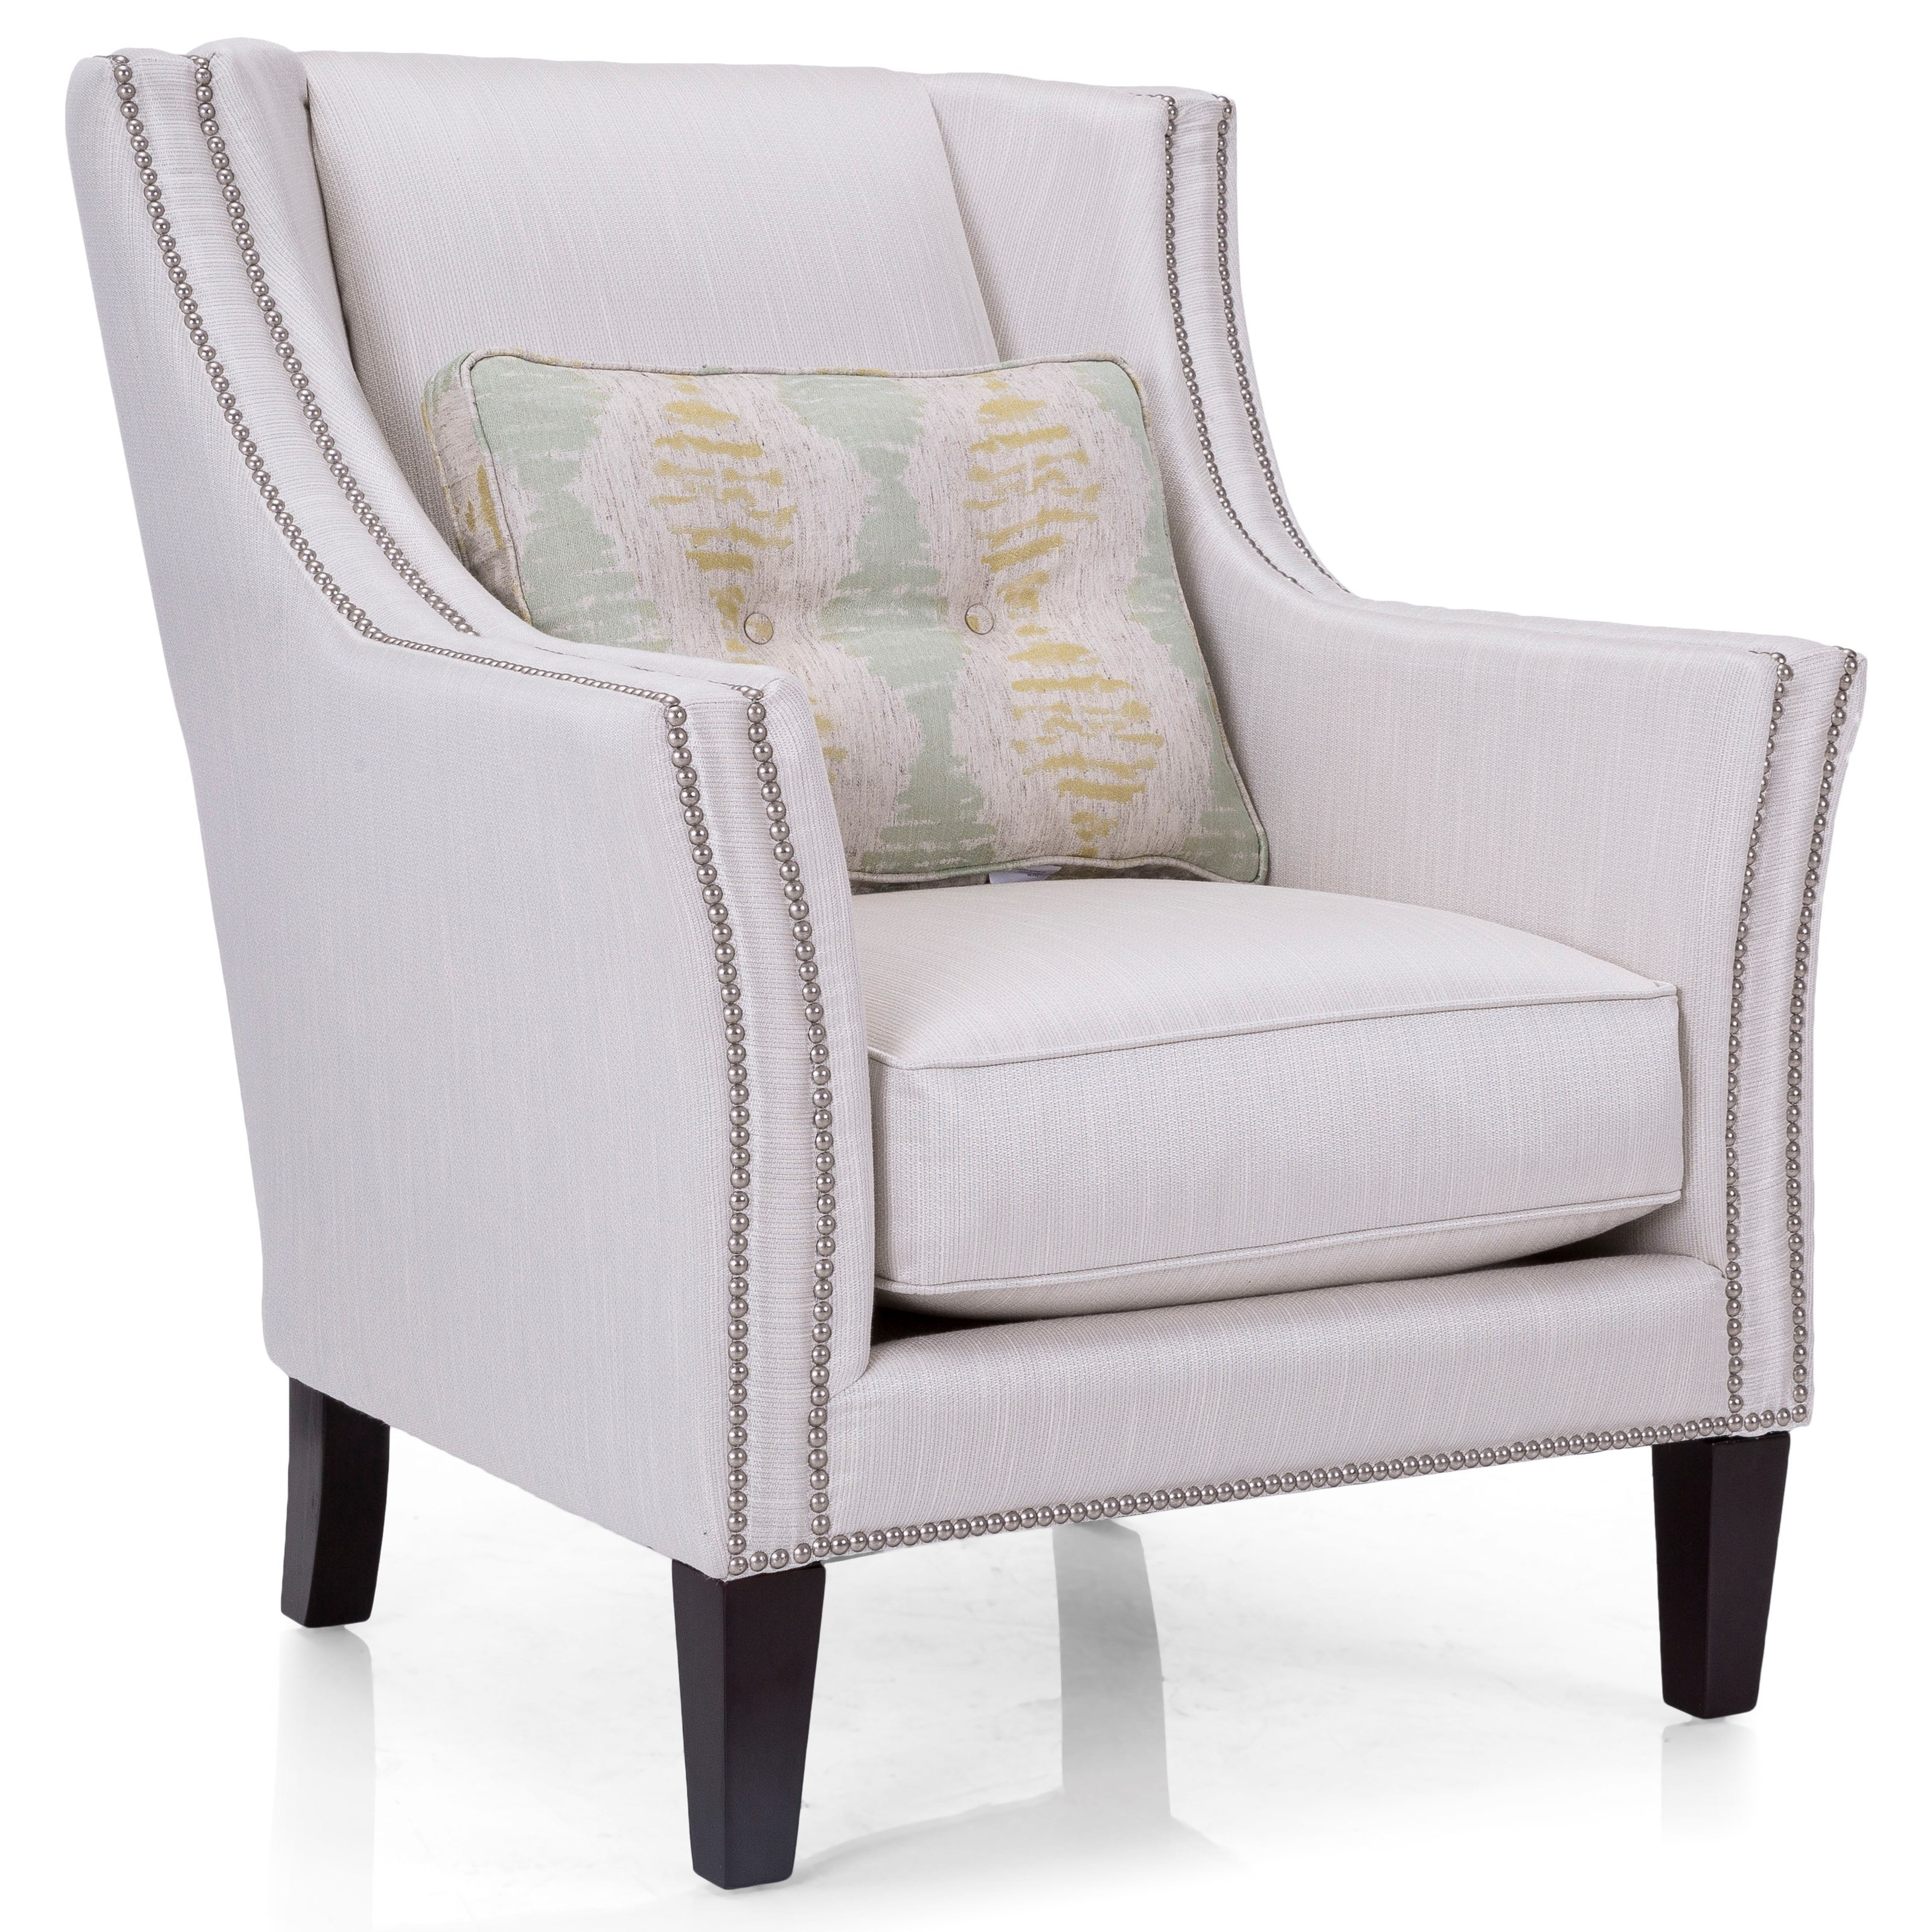 Upholstered Accents Track Arm Chair by Decor-Rest at Johnny Janosik